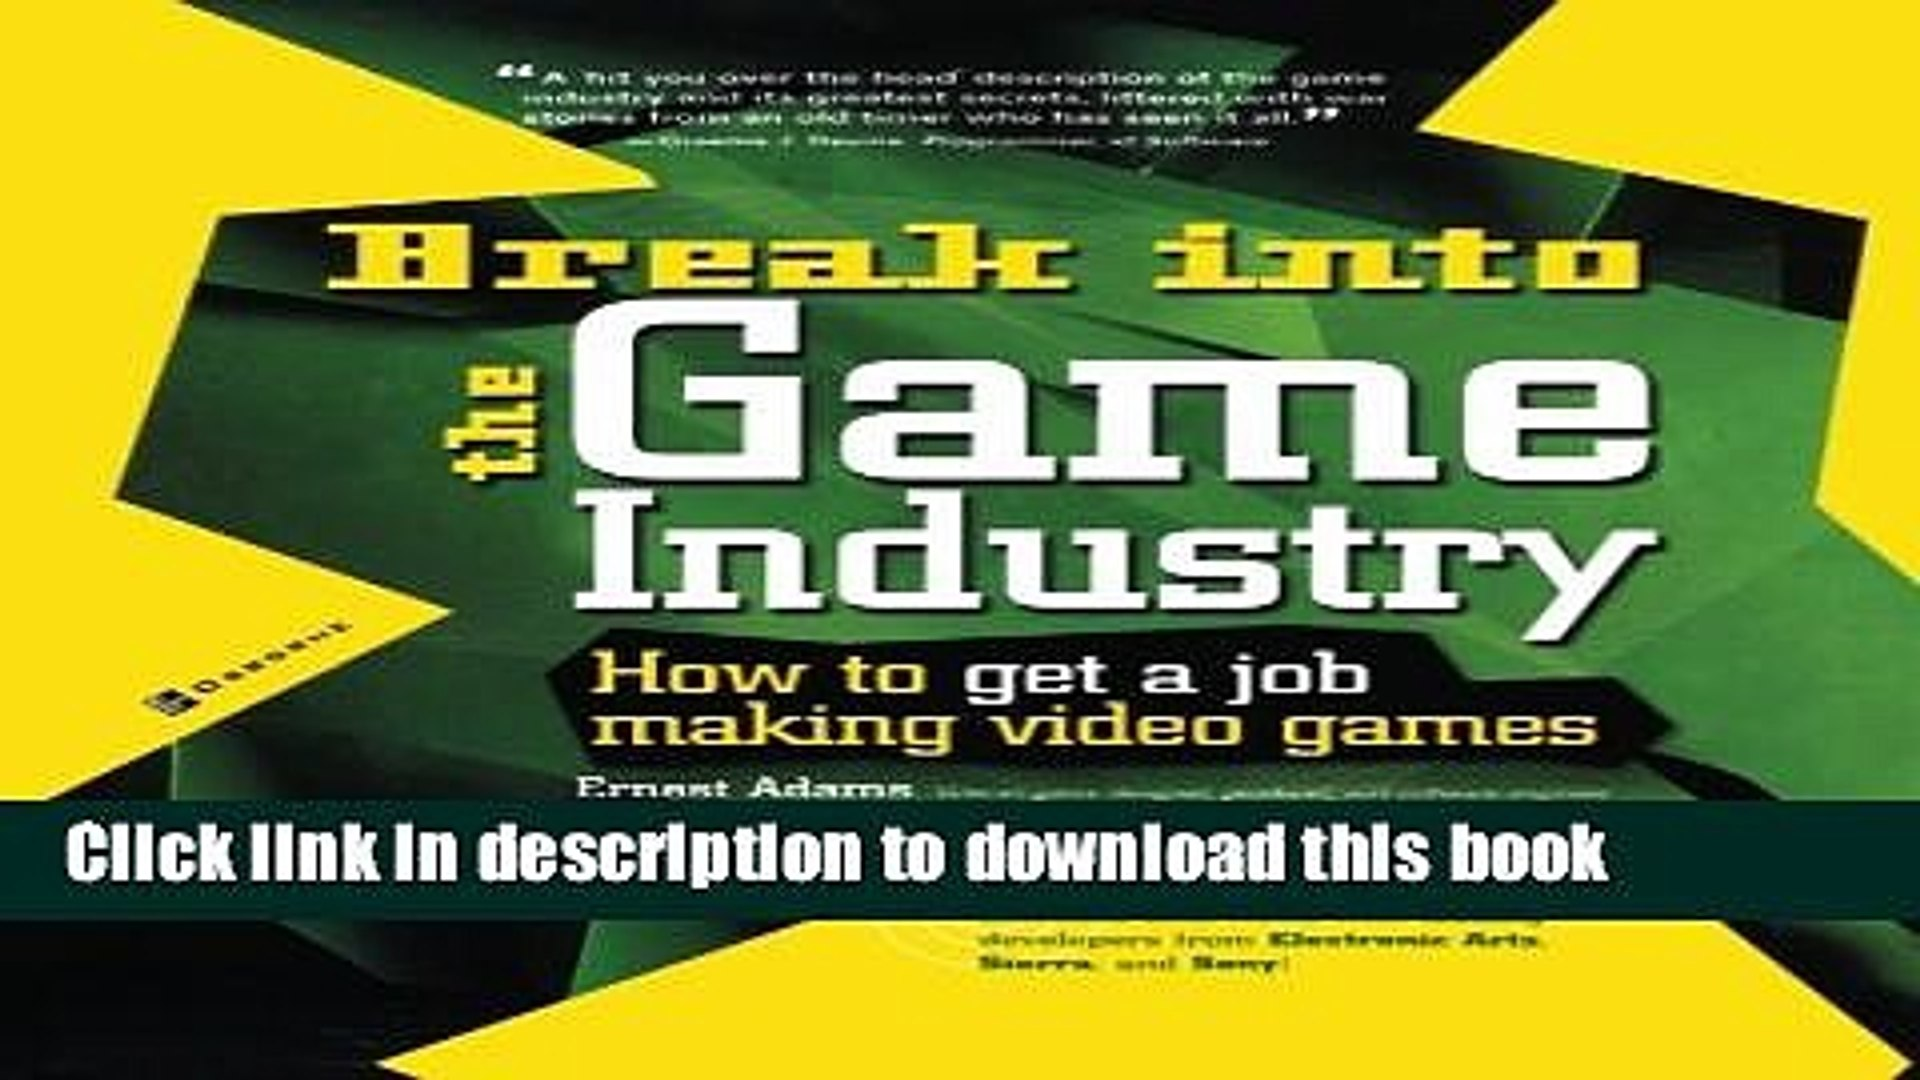 [Fresh] Break Into The Game Industry: How to Get A Job Making Video Games New Ebook